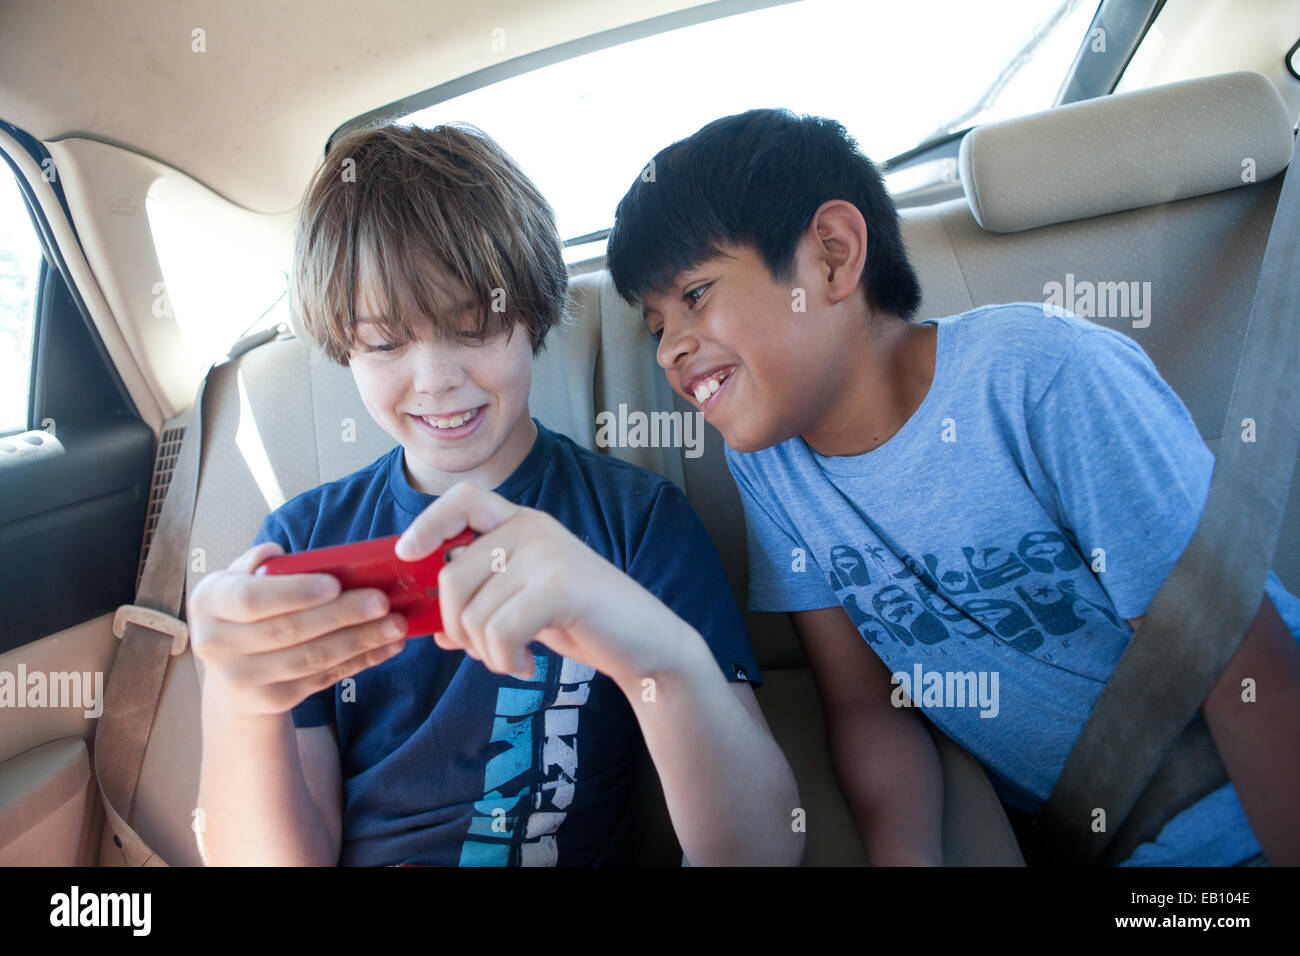 Two Ten Year Old Boys Watch A Video On A Phone, Back Seat